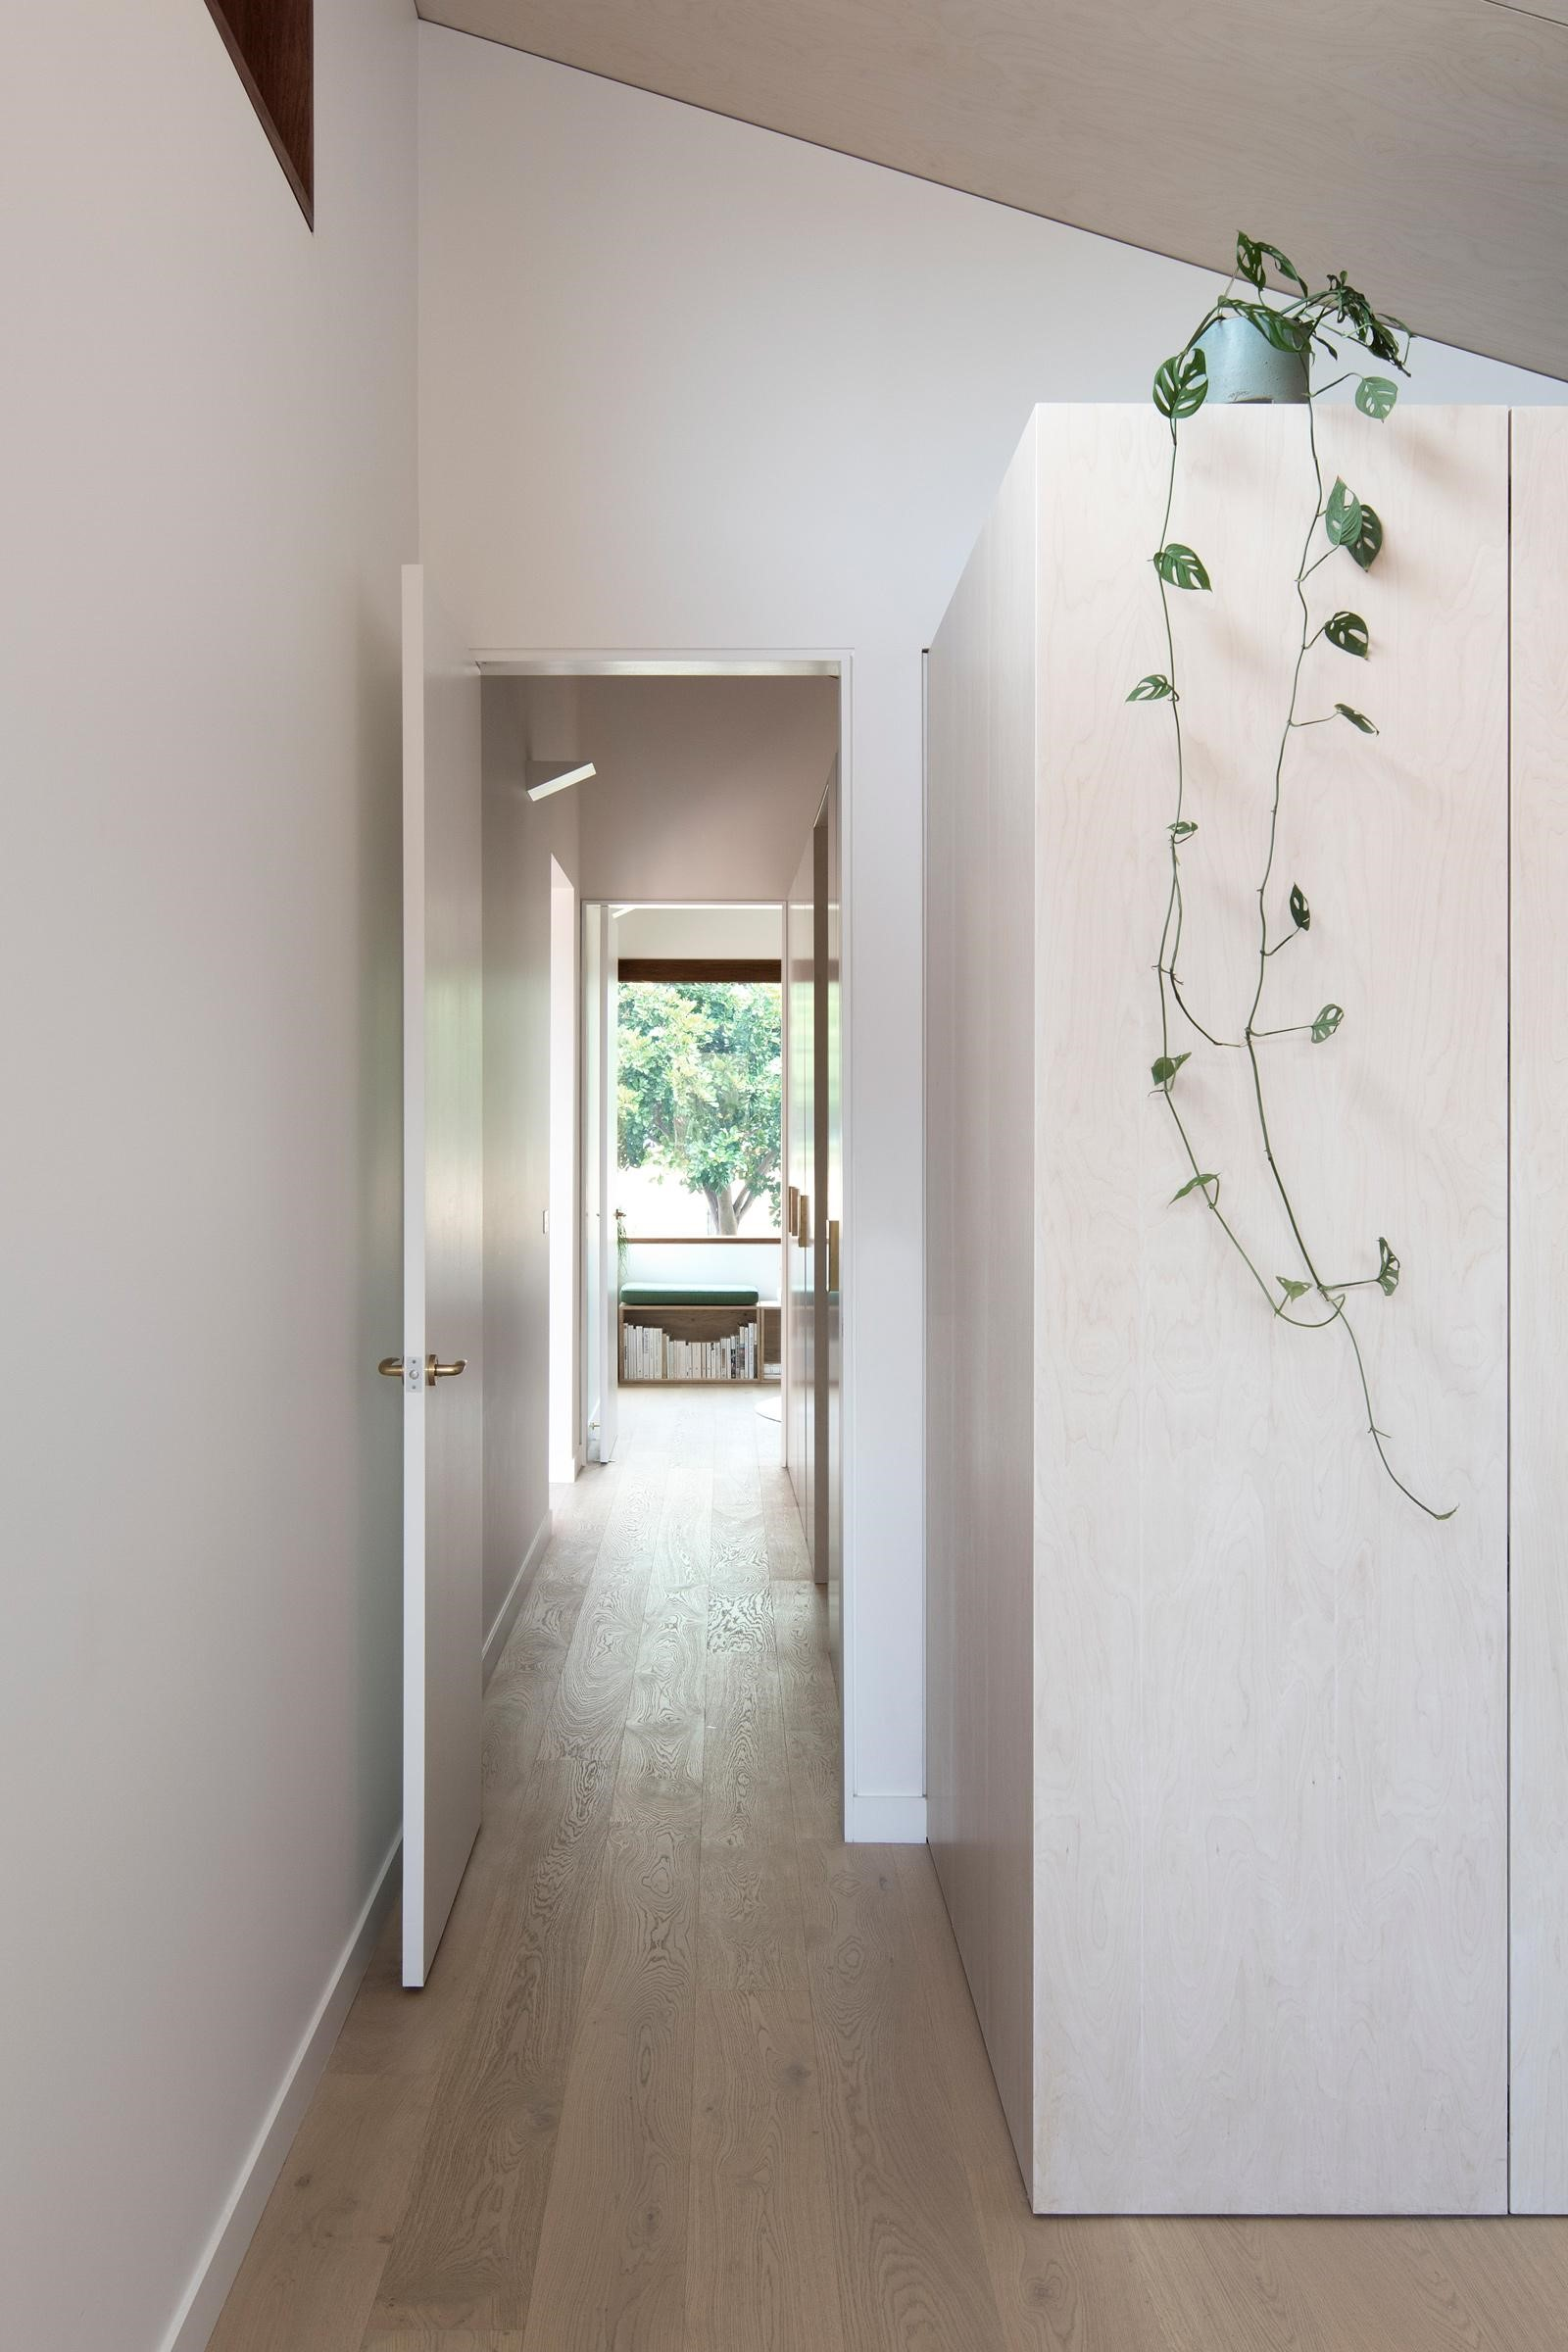 Gallery Of The Three Piece House By Trias Studio Local Australian Bespoke Interiors And Contempoary Design Sydney, Nsw Image 21